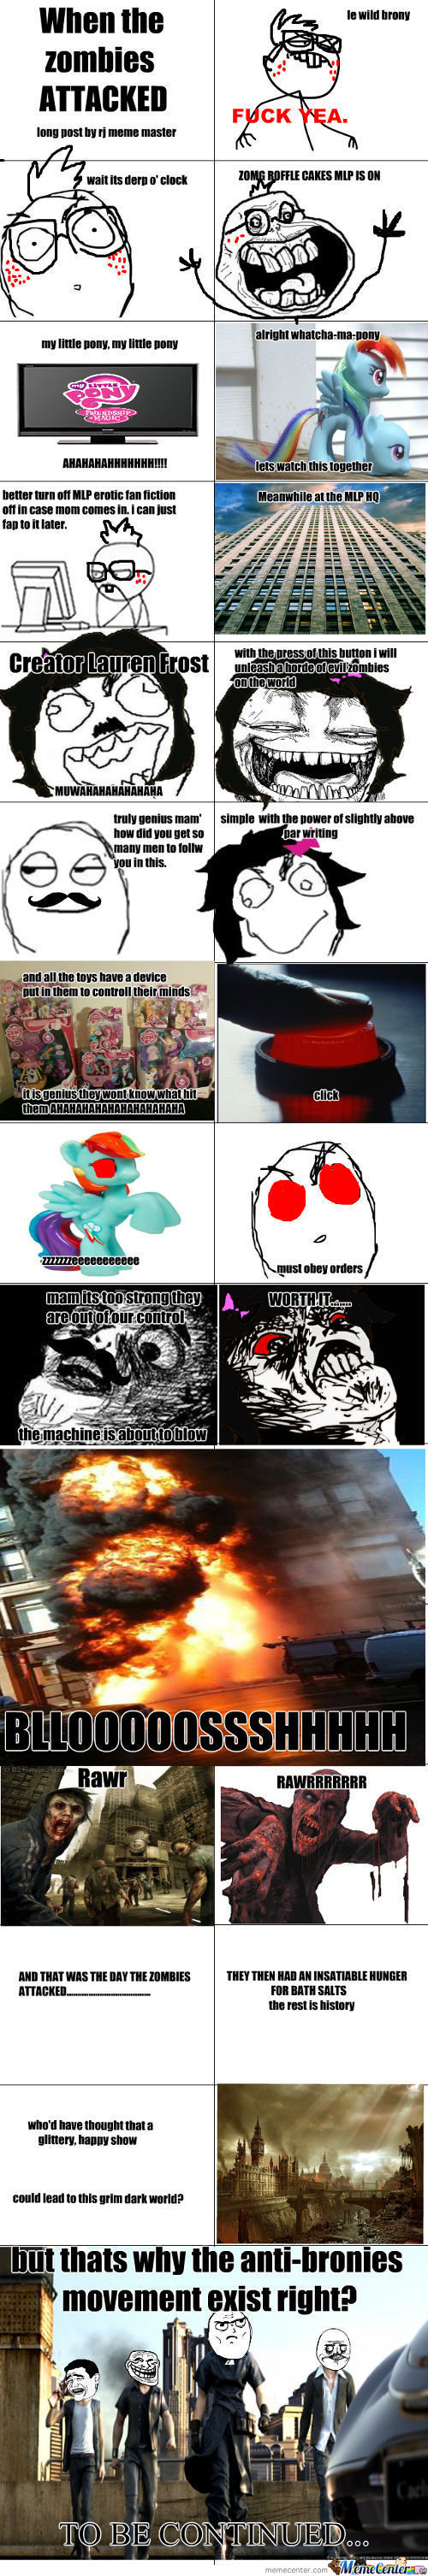 The Day The Zombies Attacked. Deal With It Mlp Fans